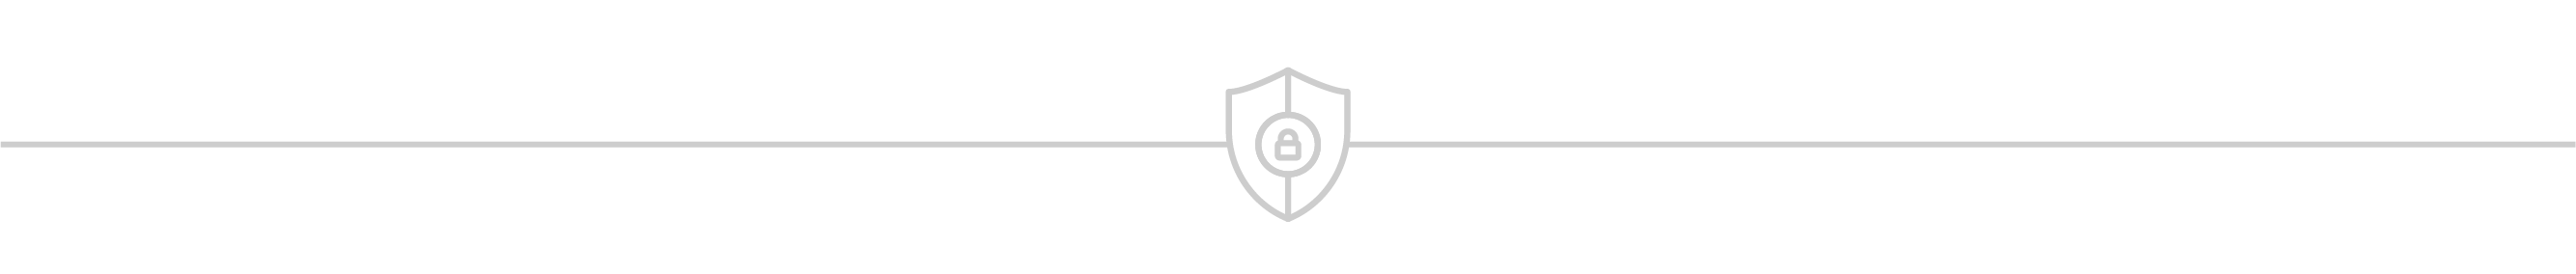 Symbol for Secure Connections